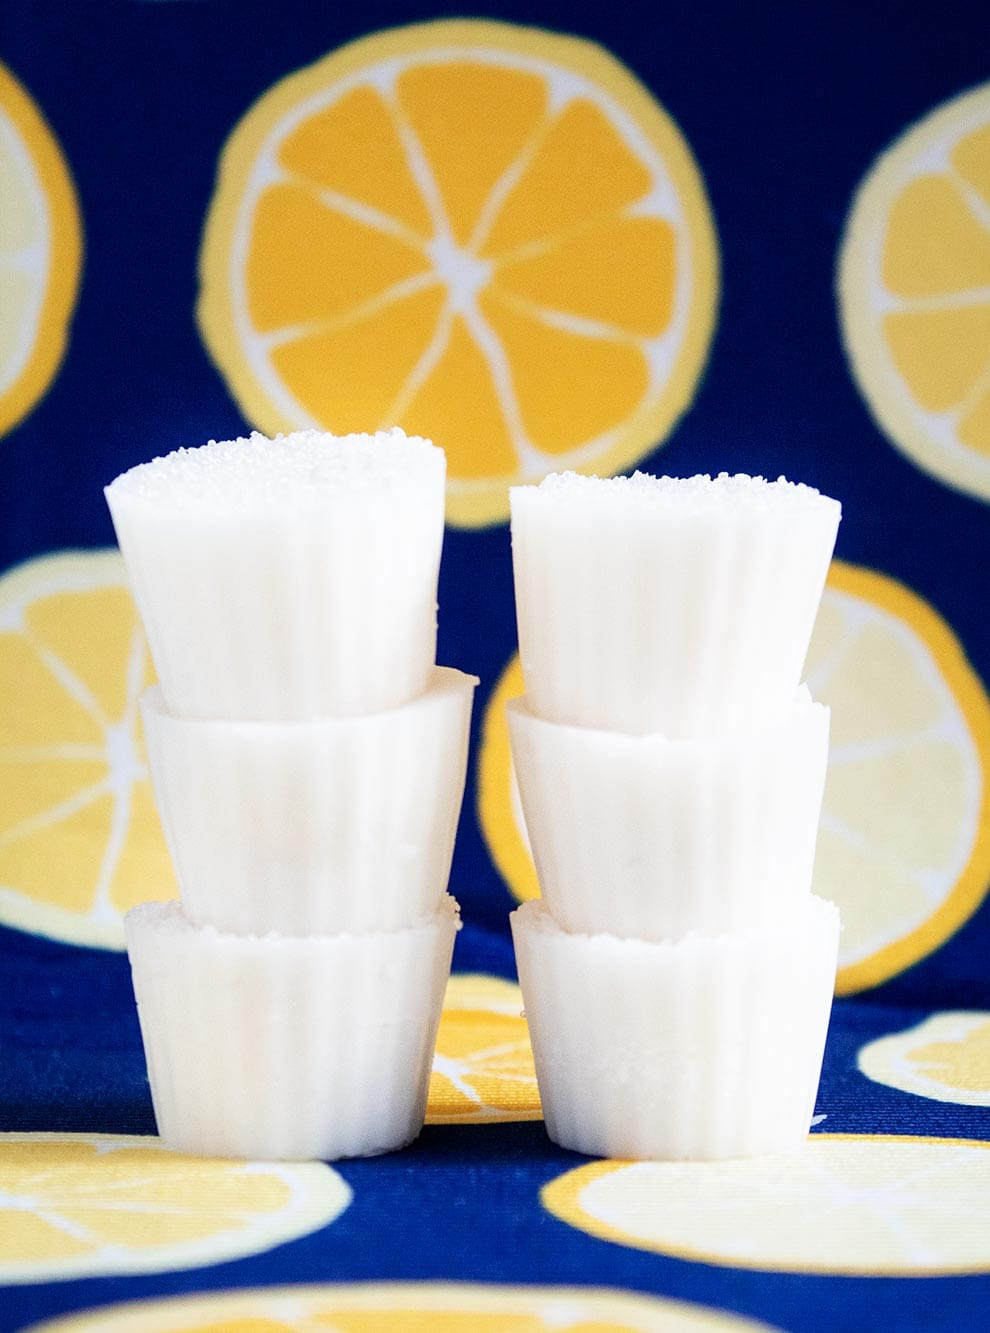 keto lemon coconut fat bombs stacked three high on a lemon and blue background